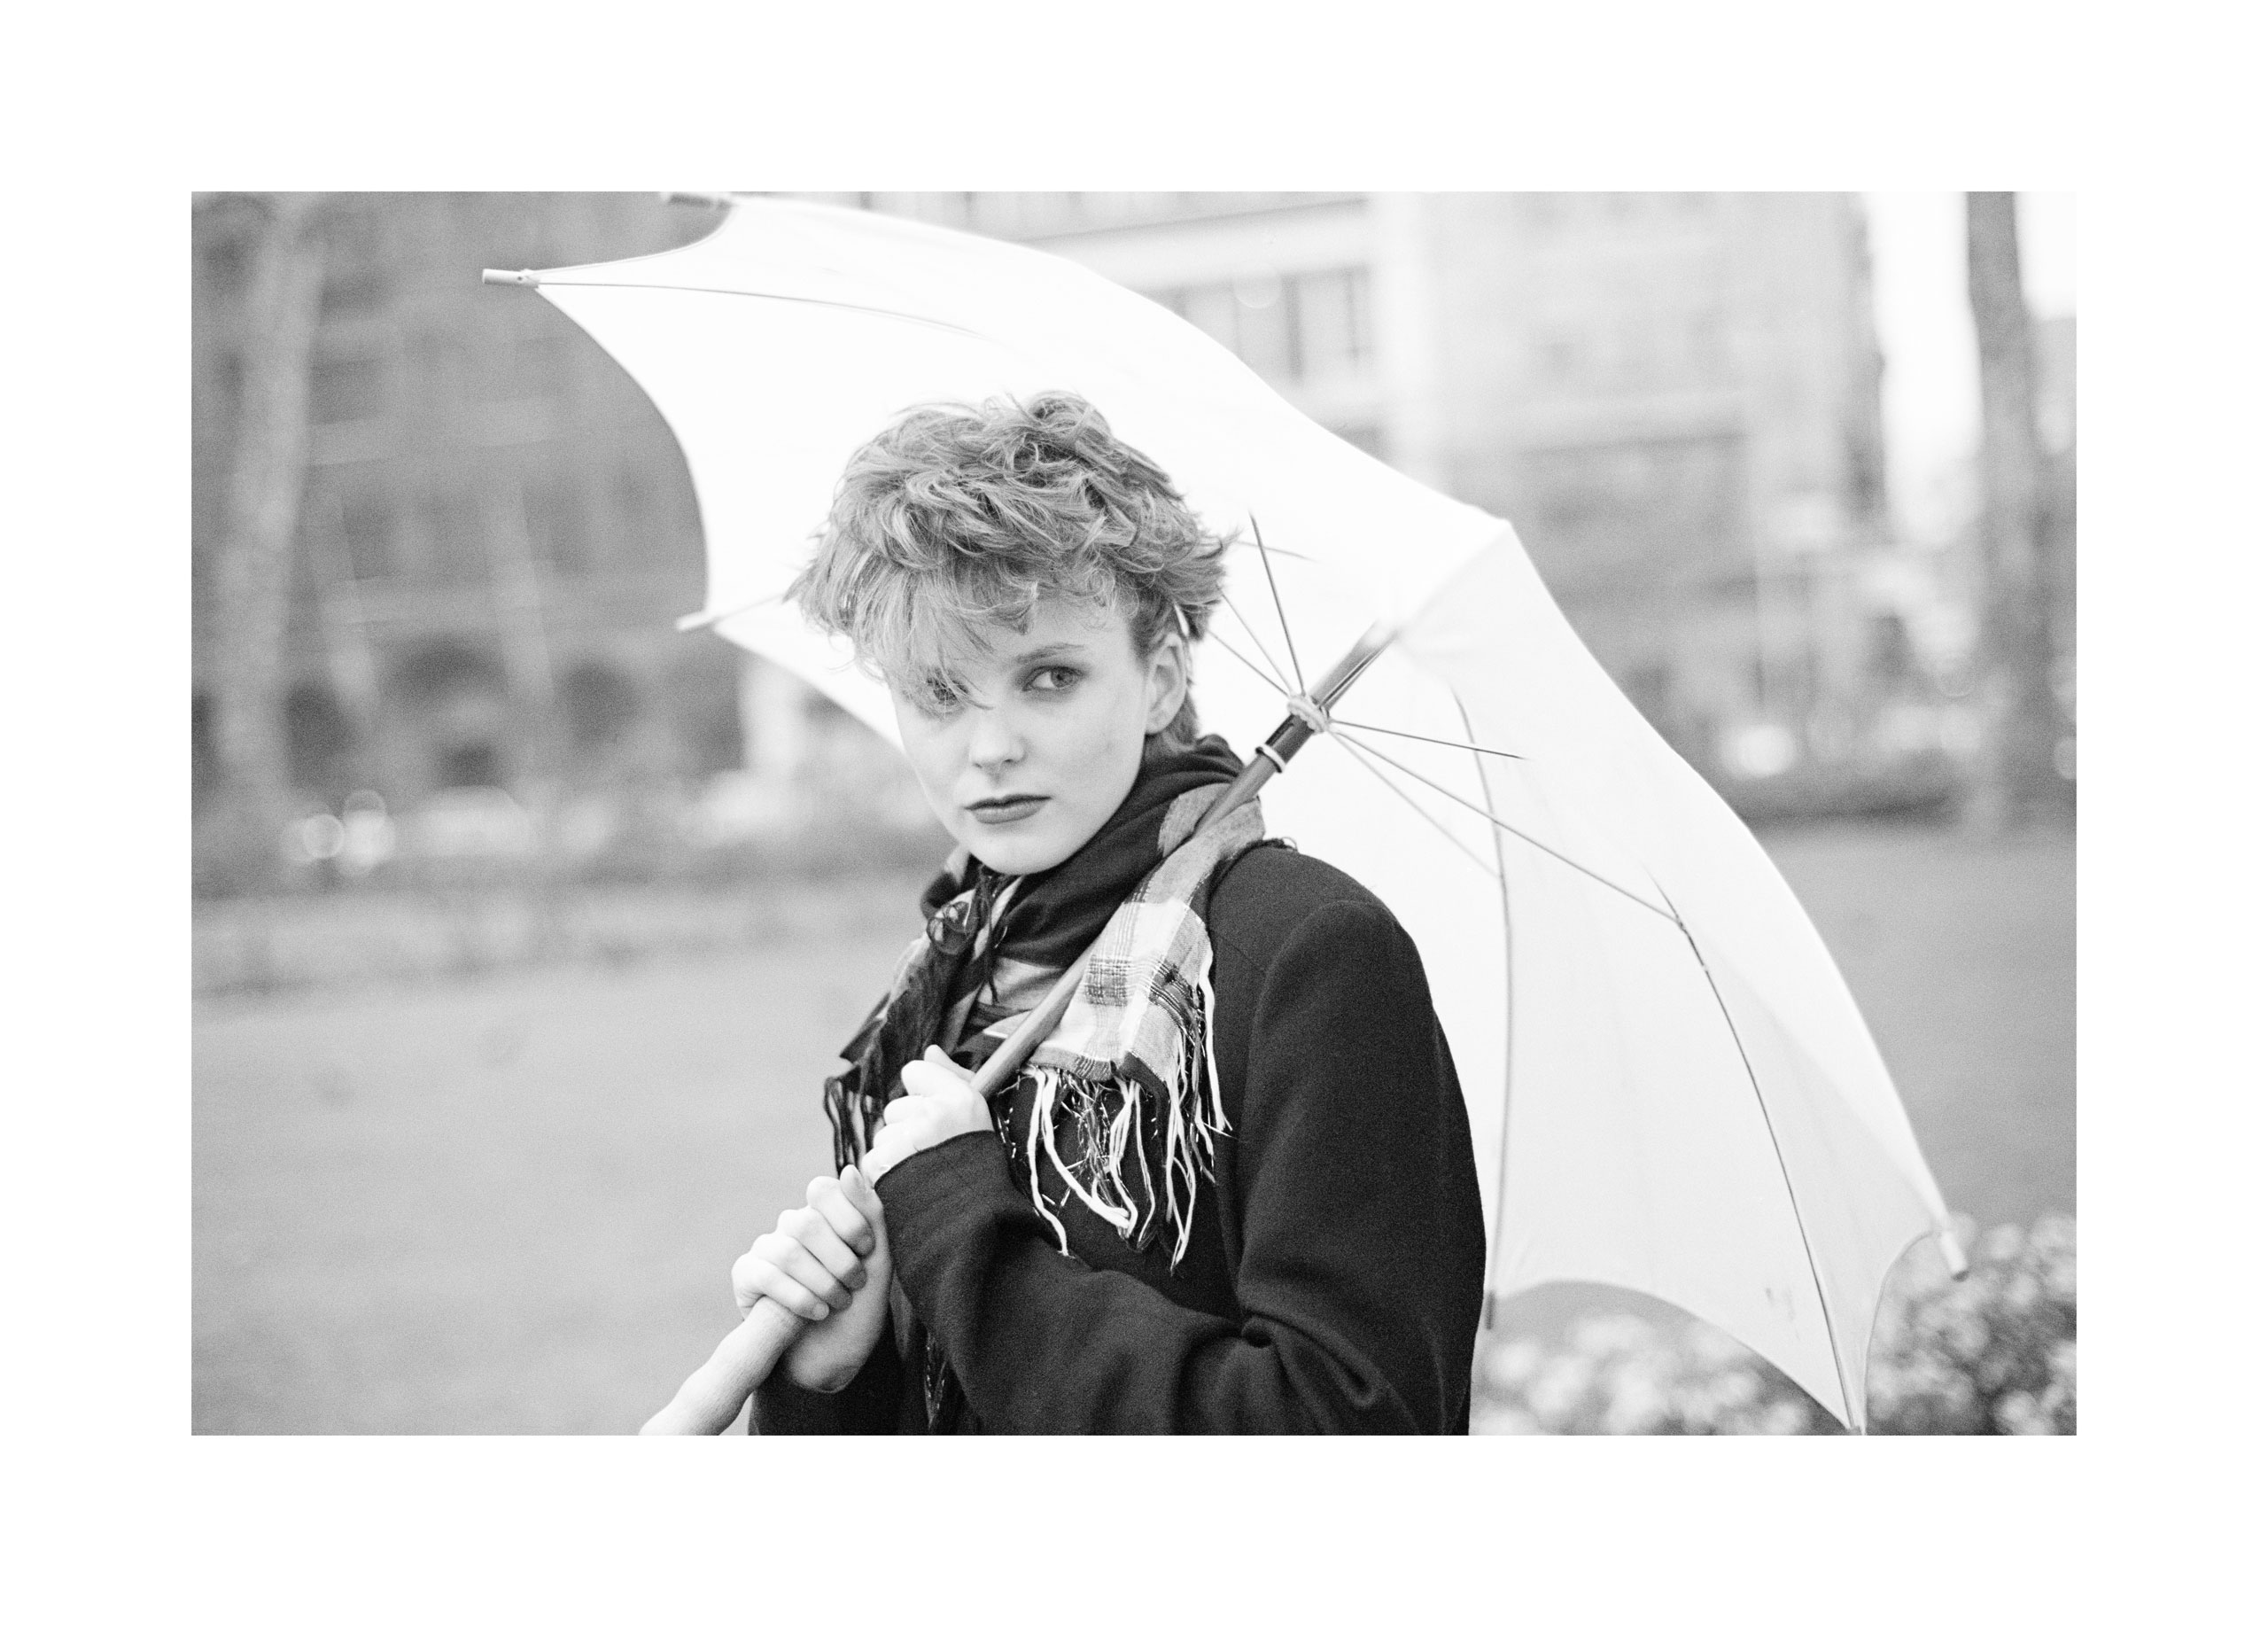 Image of Claire Grogan (with Umbrella) by Harry Papadopoulos